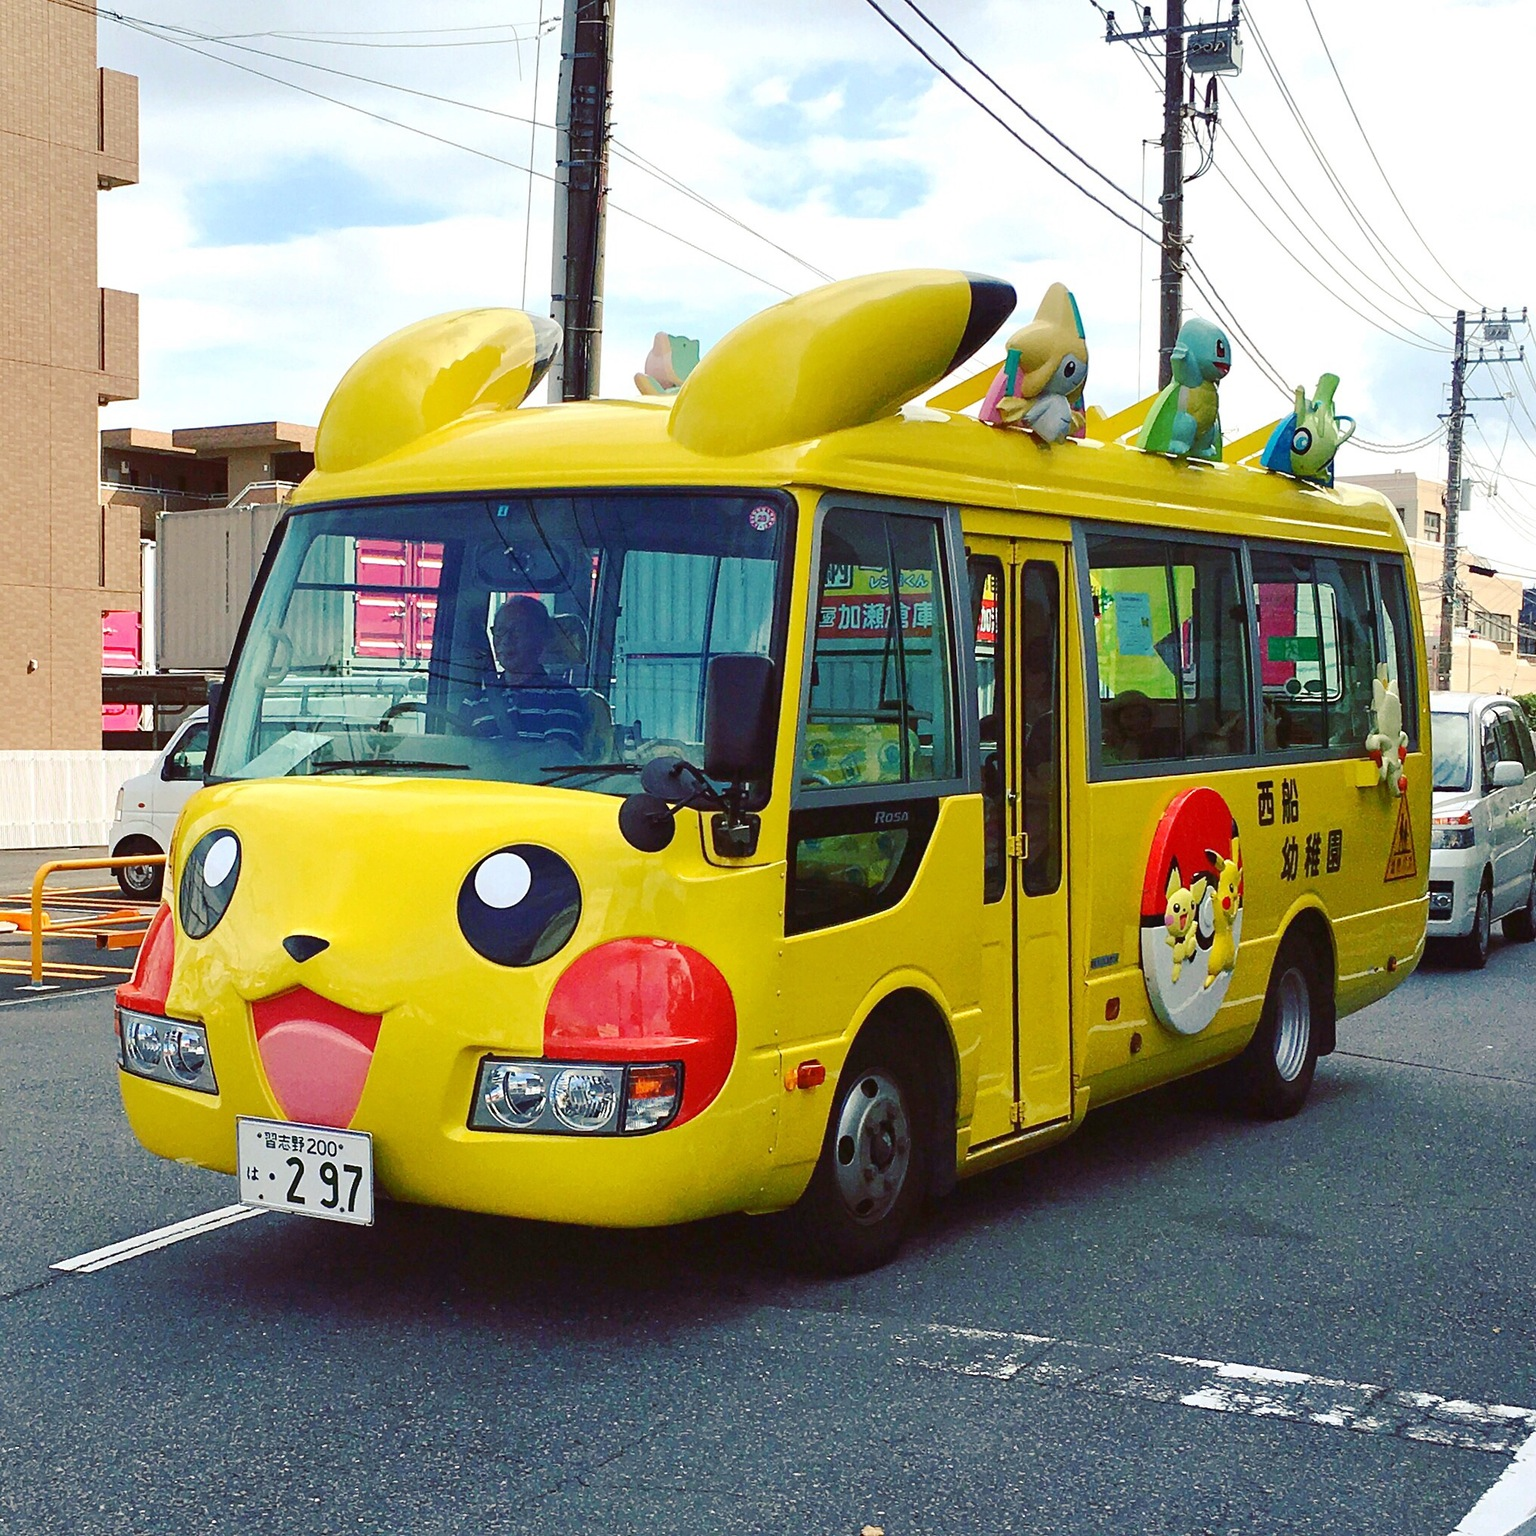 Japanese children ride to school in this.